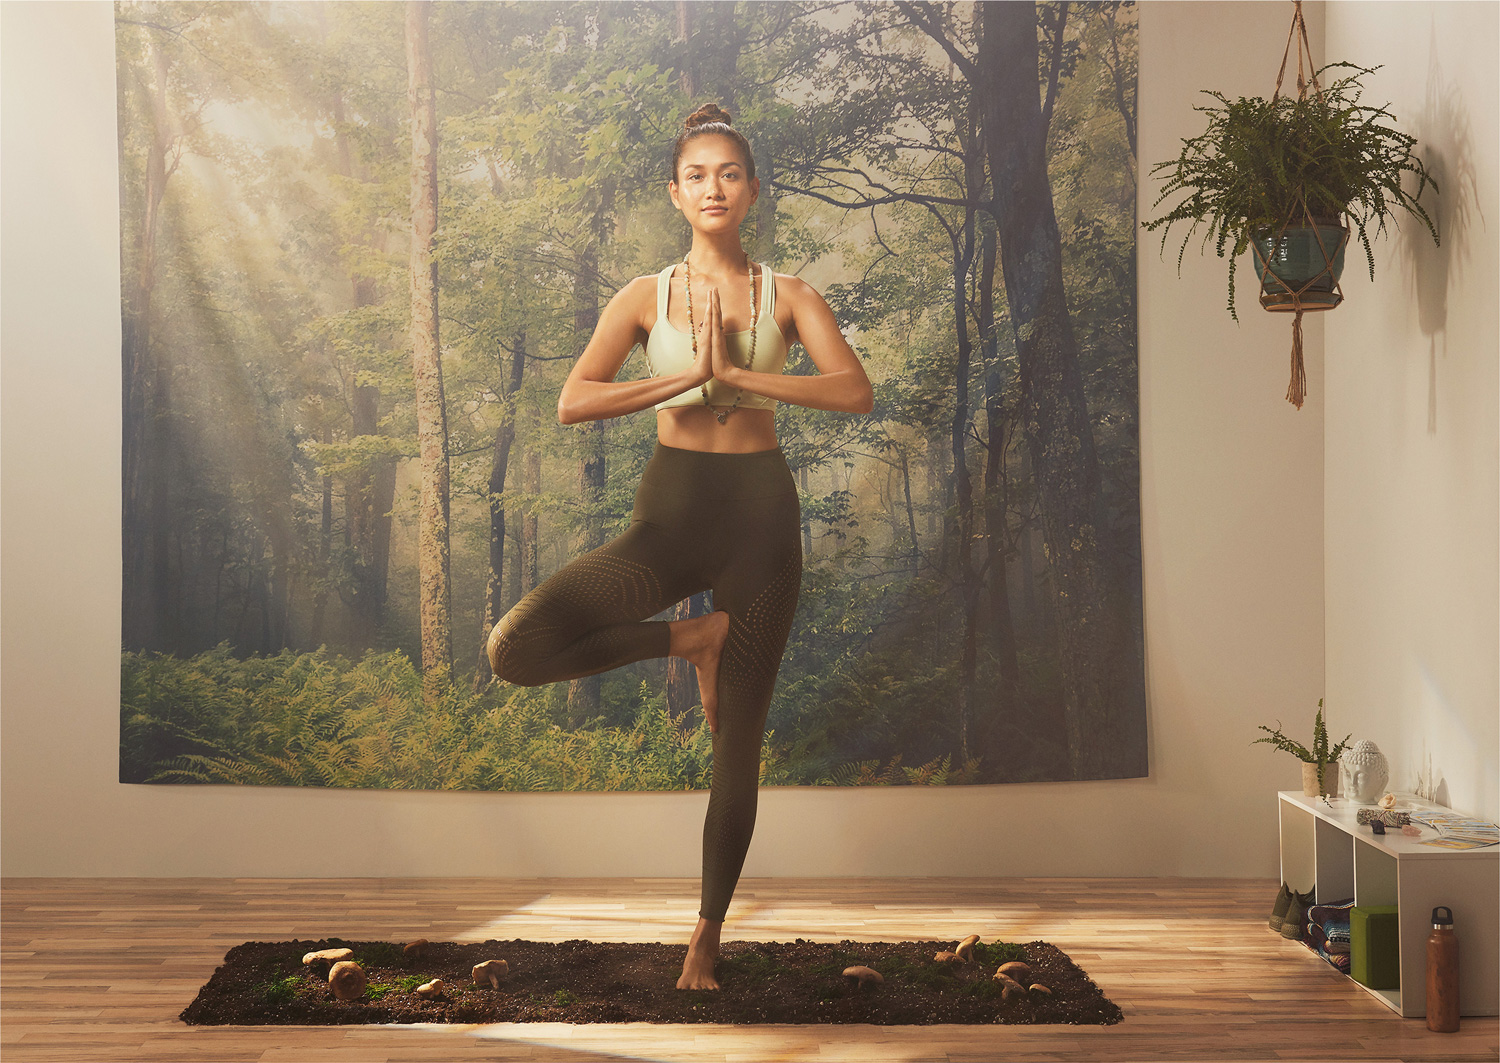 2019_06_07_YOGA_SHOT-3---FOREST_542_06crop